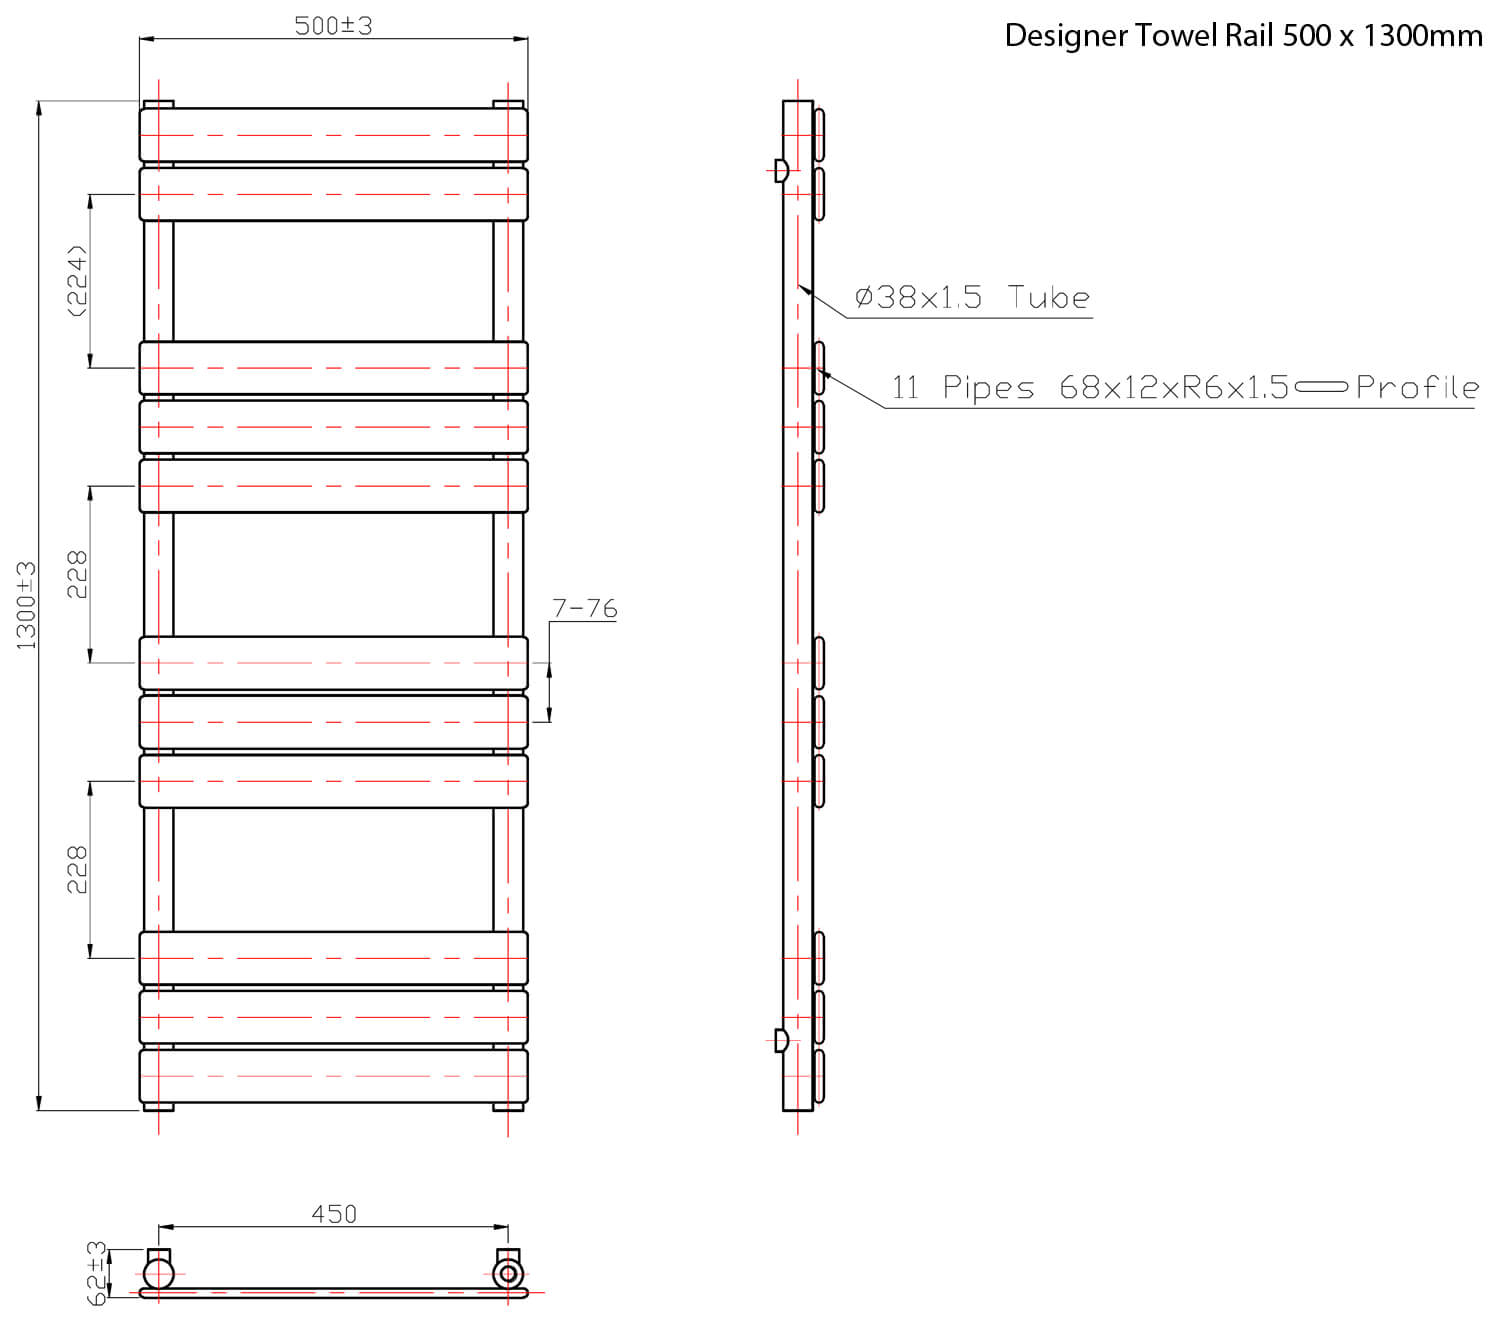 where to buy kitchen faucet sorento 500mm width designer towel rail ra011 26194